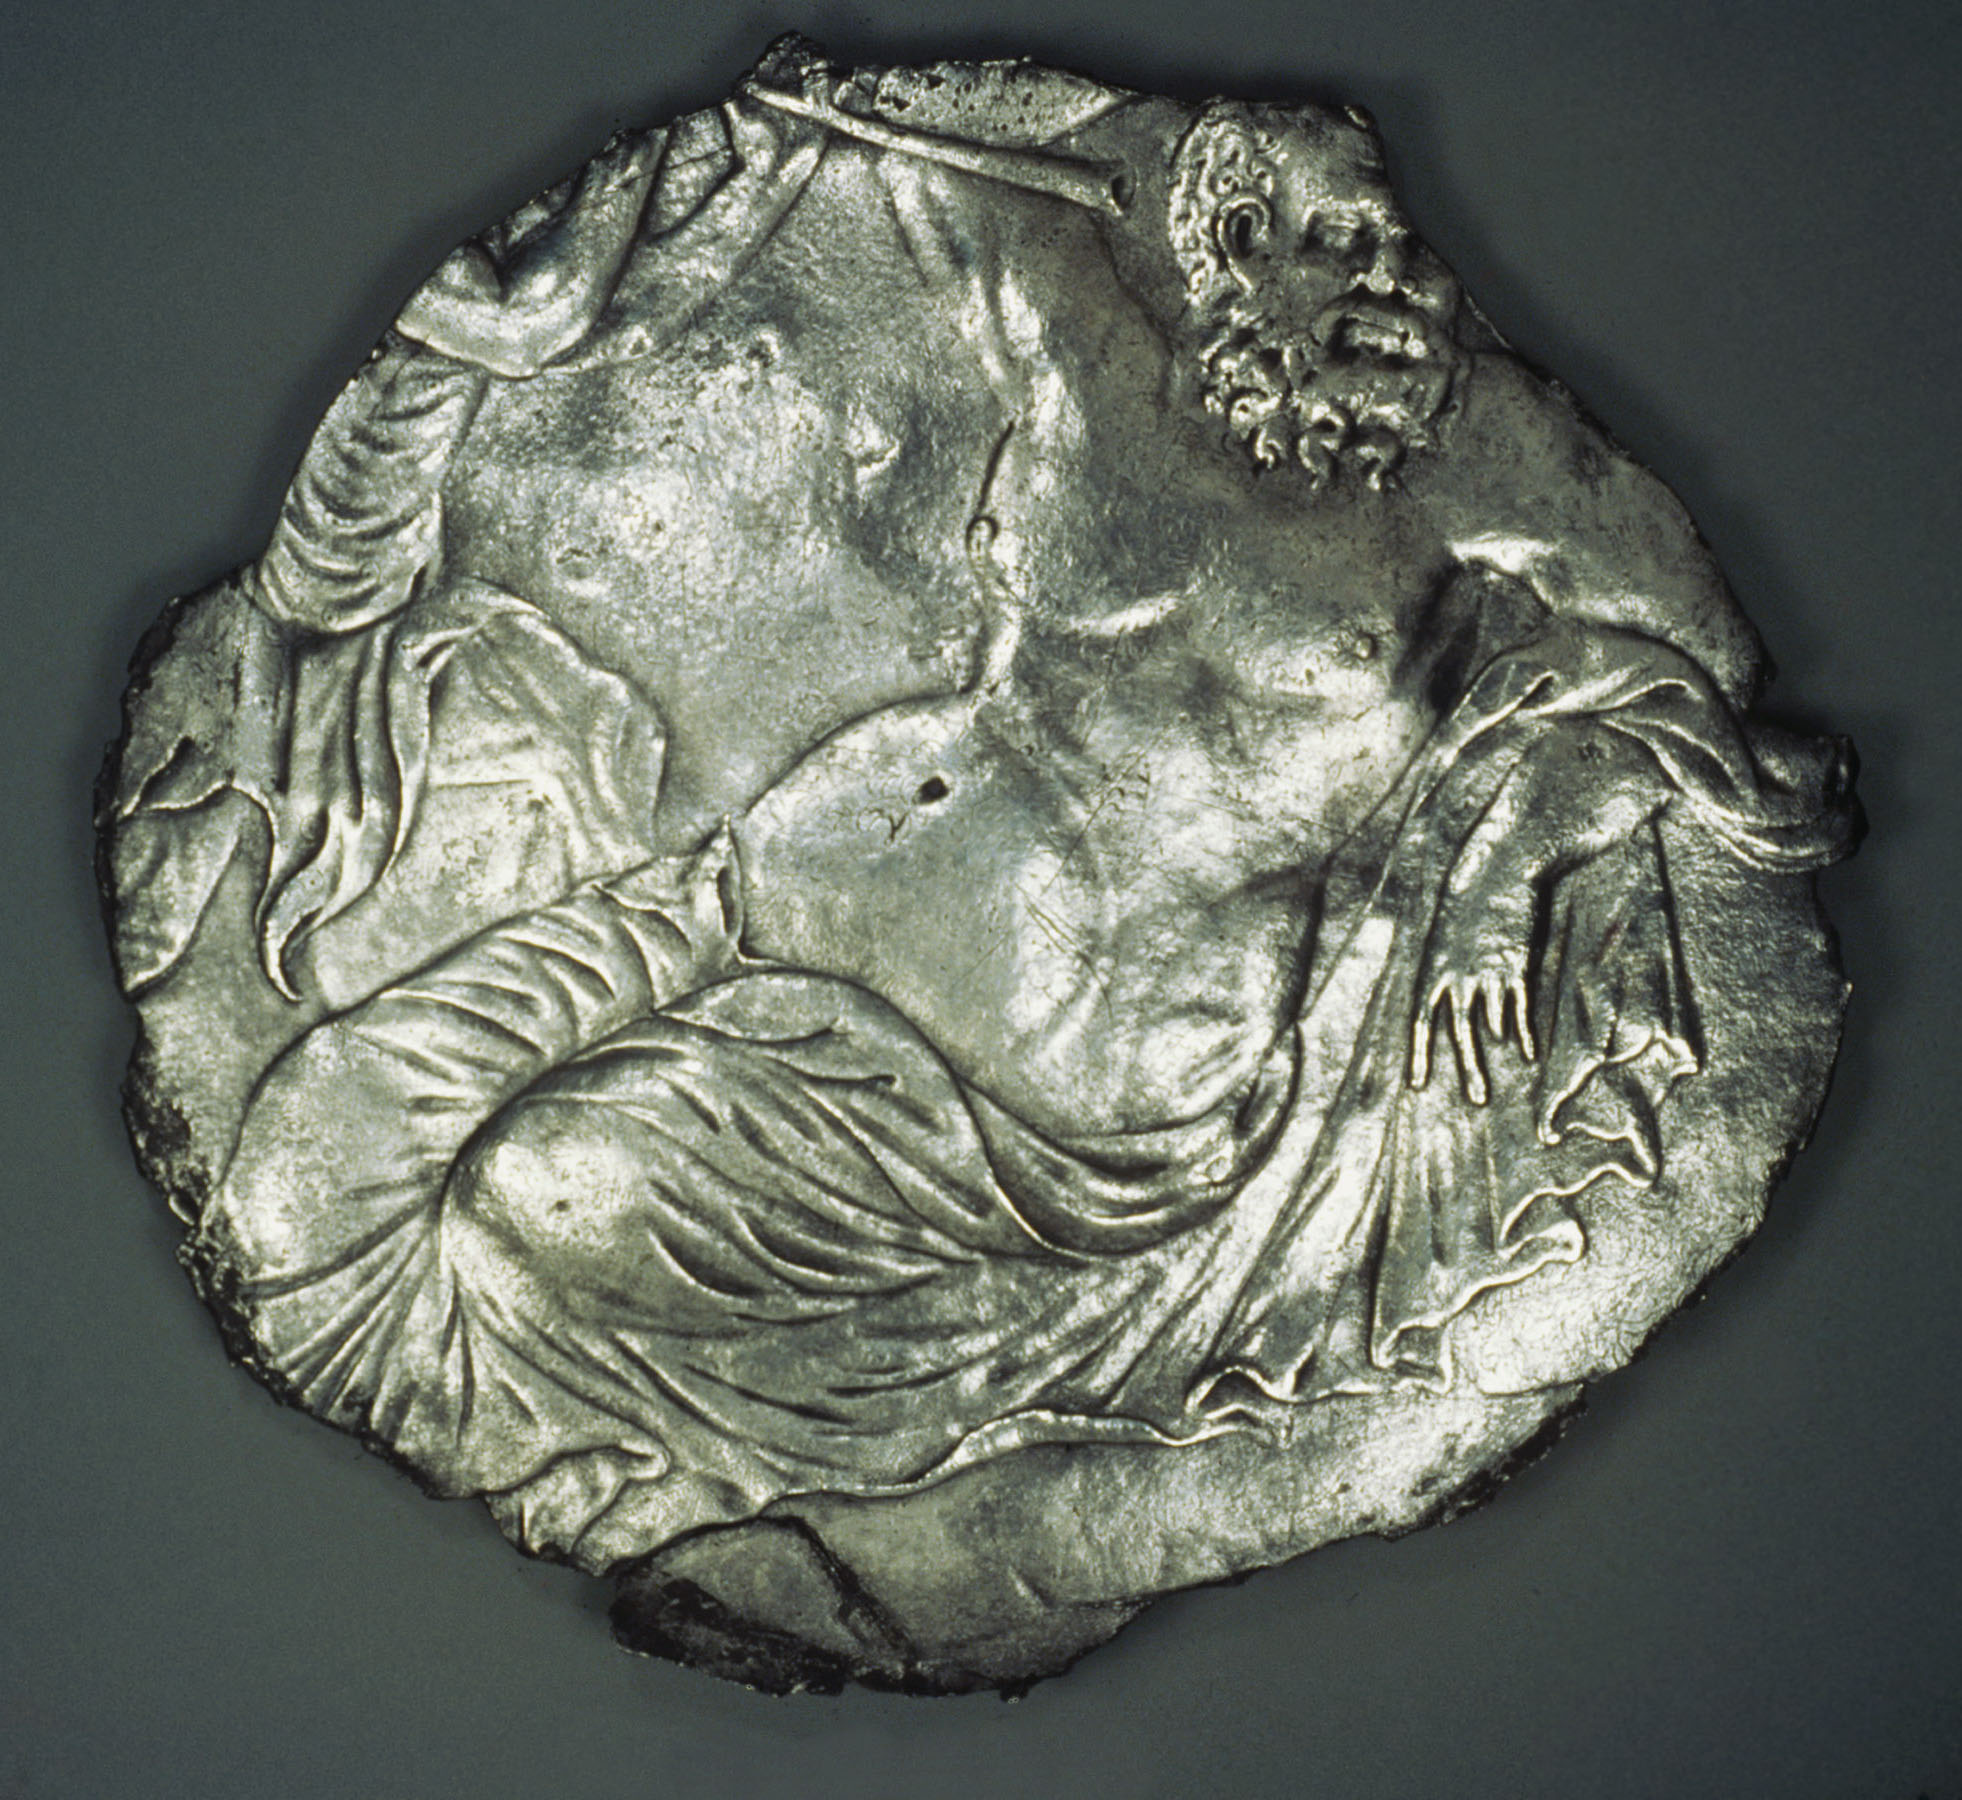 BZ.1951.20, Plate Fragment with Silenus